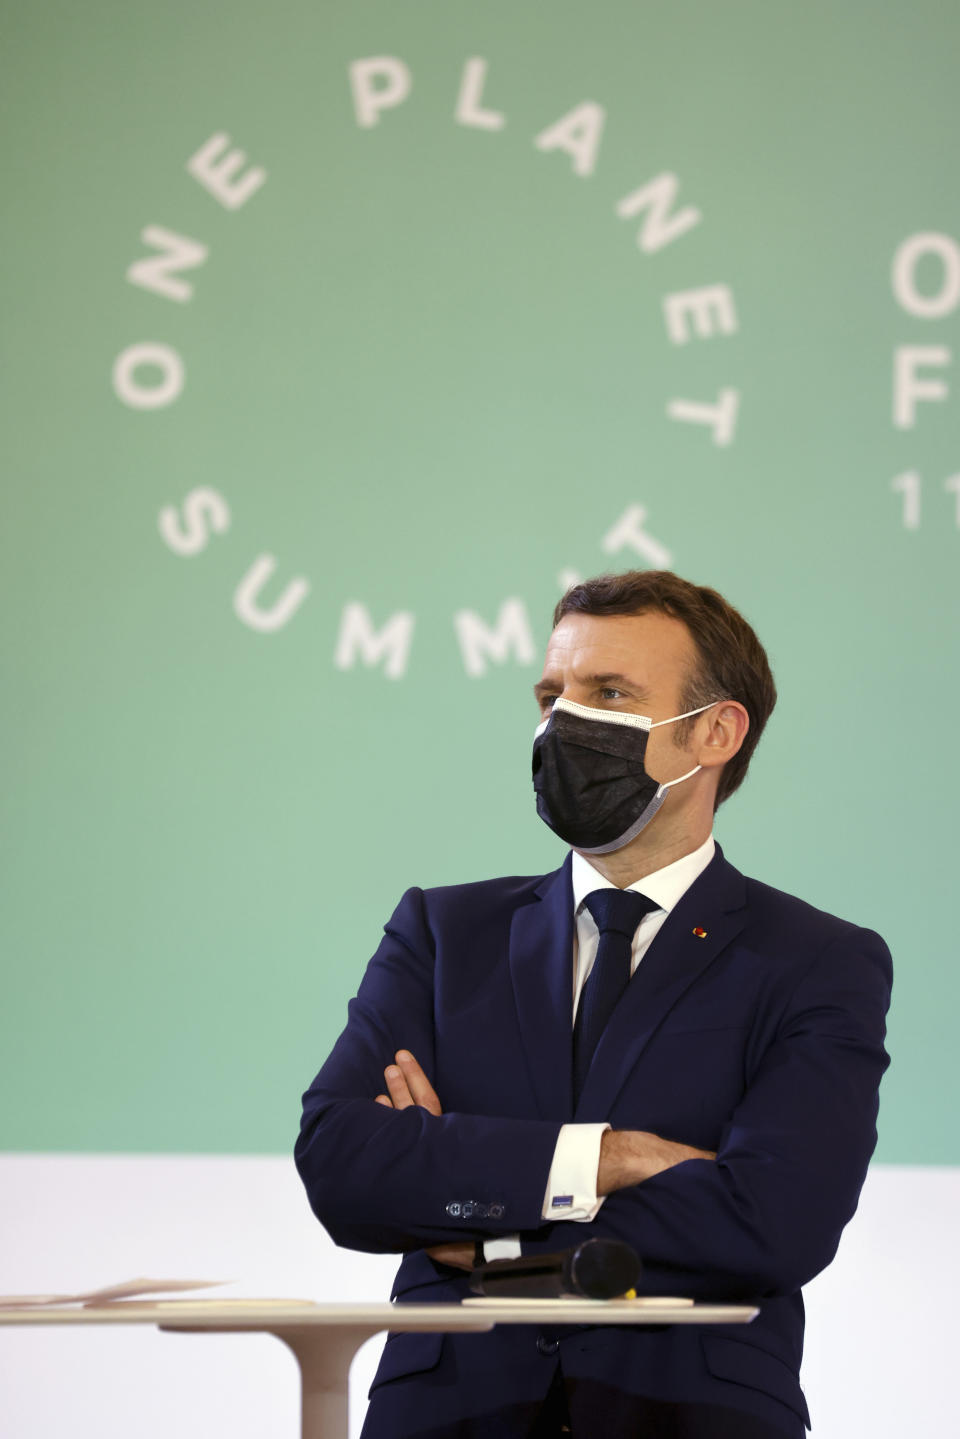 FILE - In this Jan. 11, 2021 file photo, French President Emmanuel Macron stands during the One Planet Summit, at The Elysee Palace, in Paris, France. World leaders breathed an audible sigh of relief that the United States under President Joe Biden is rejoining the global effort to curb climate change, a cause that his predecessor had shunned. (Ludovic Marin, Pool Photo via AP, File)